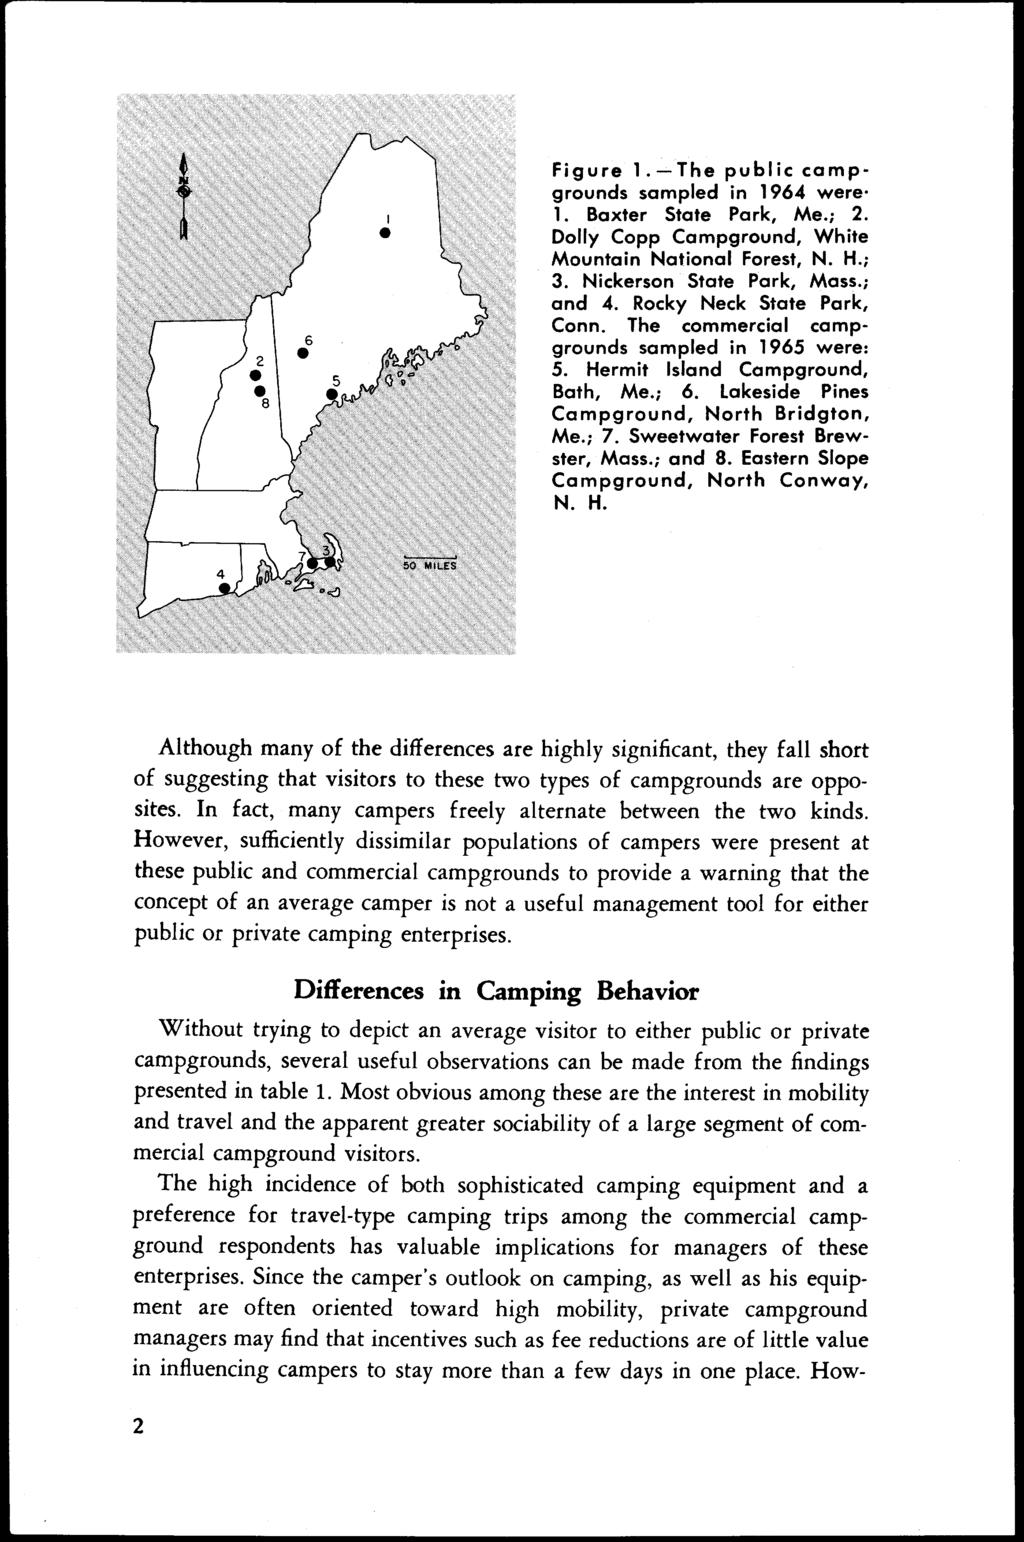 Figure 1.-The public campgrounds sampled in 1964 were. 1. Baxter State Park, Me.; 2. Dolly Copp Campground, White Mountain National Forest, N. H.; 3. Nickerson State Park, Mass.; and 4.